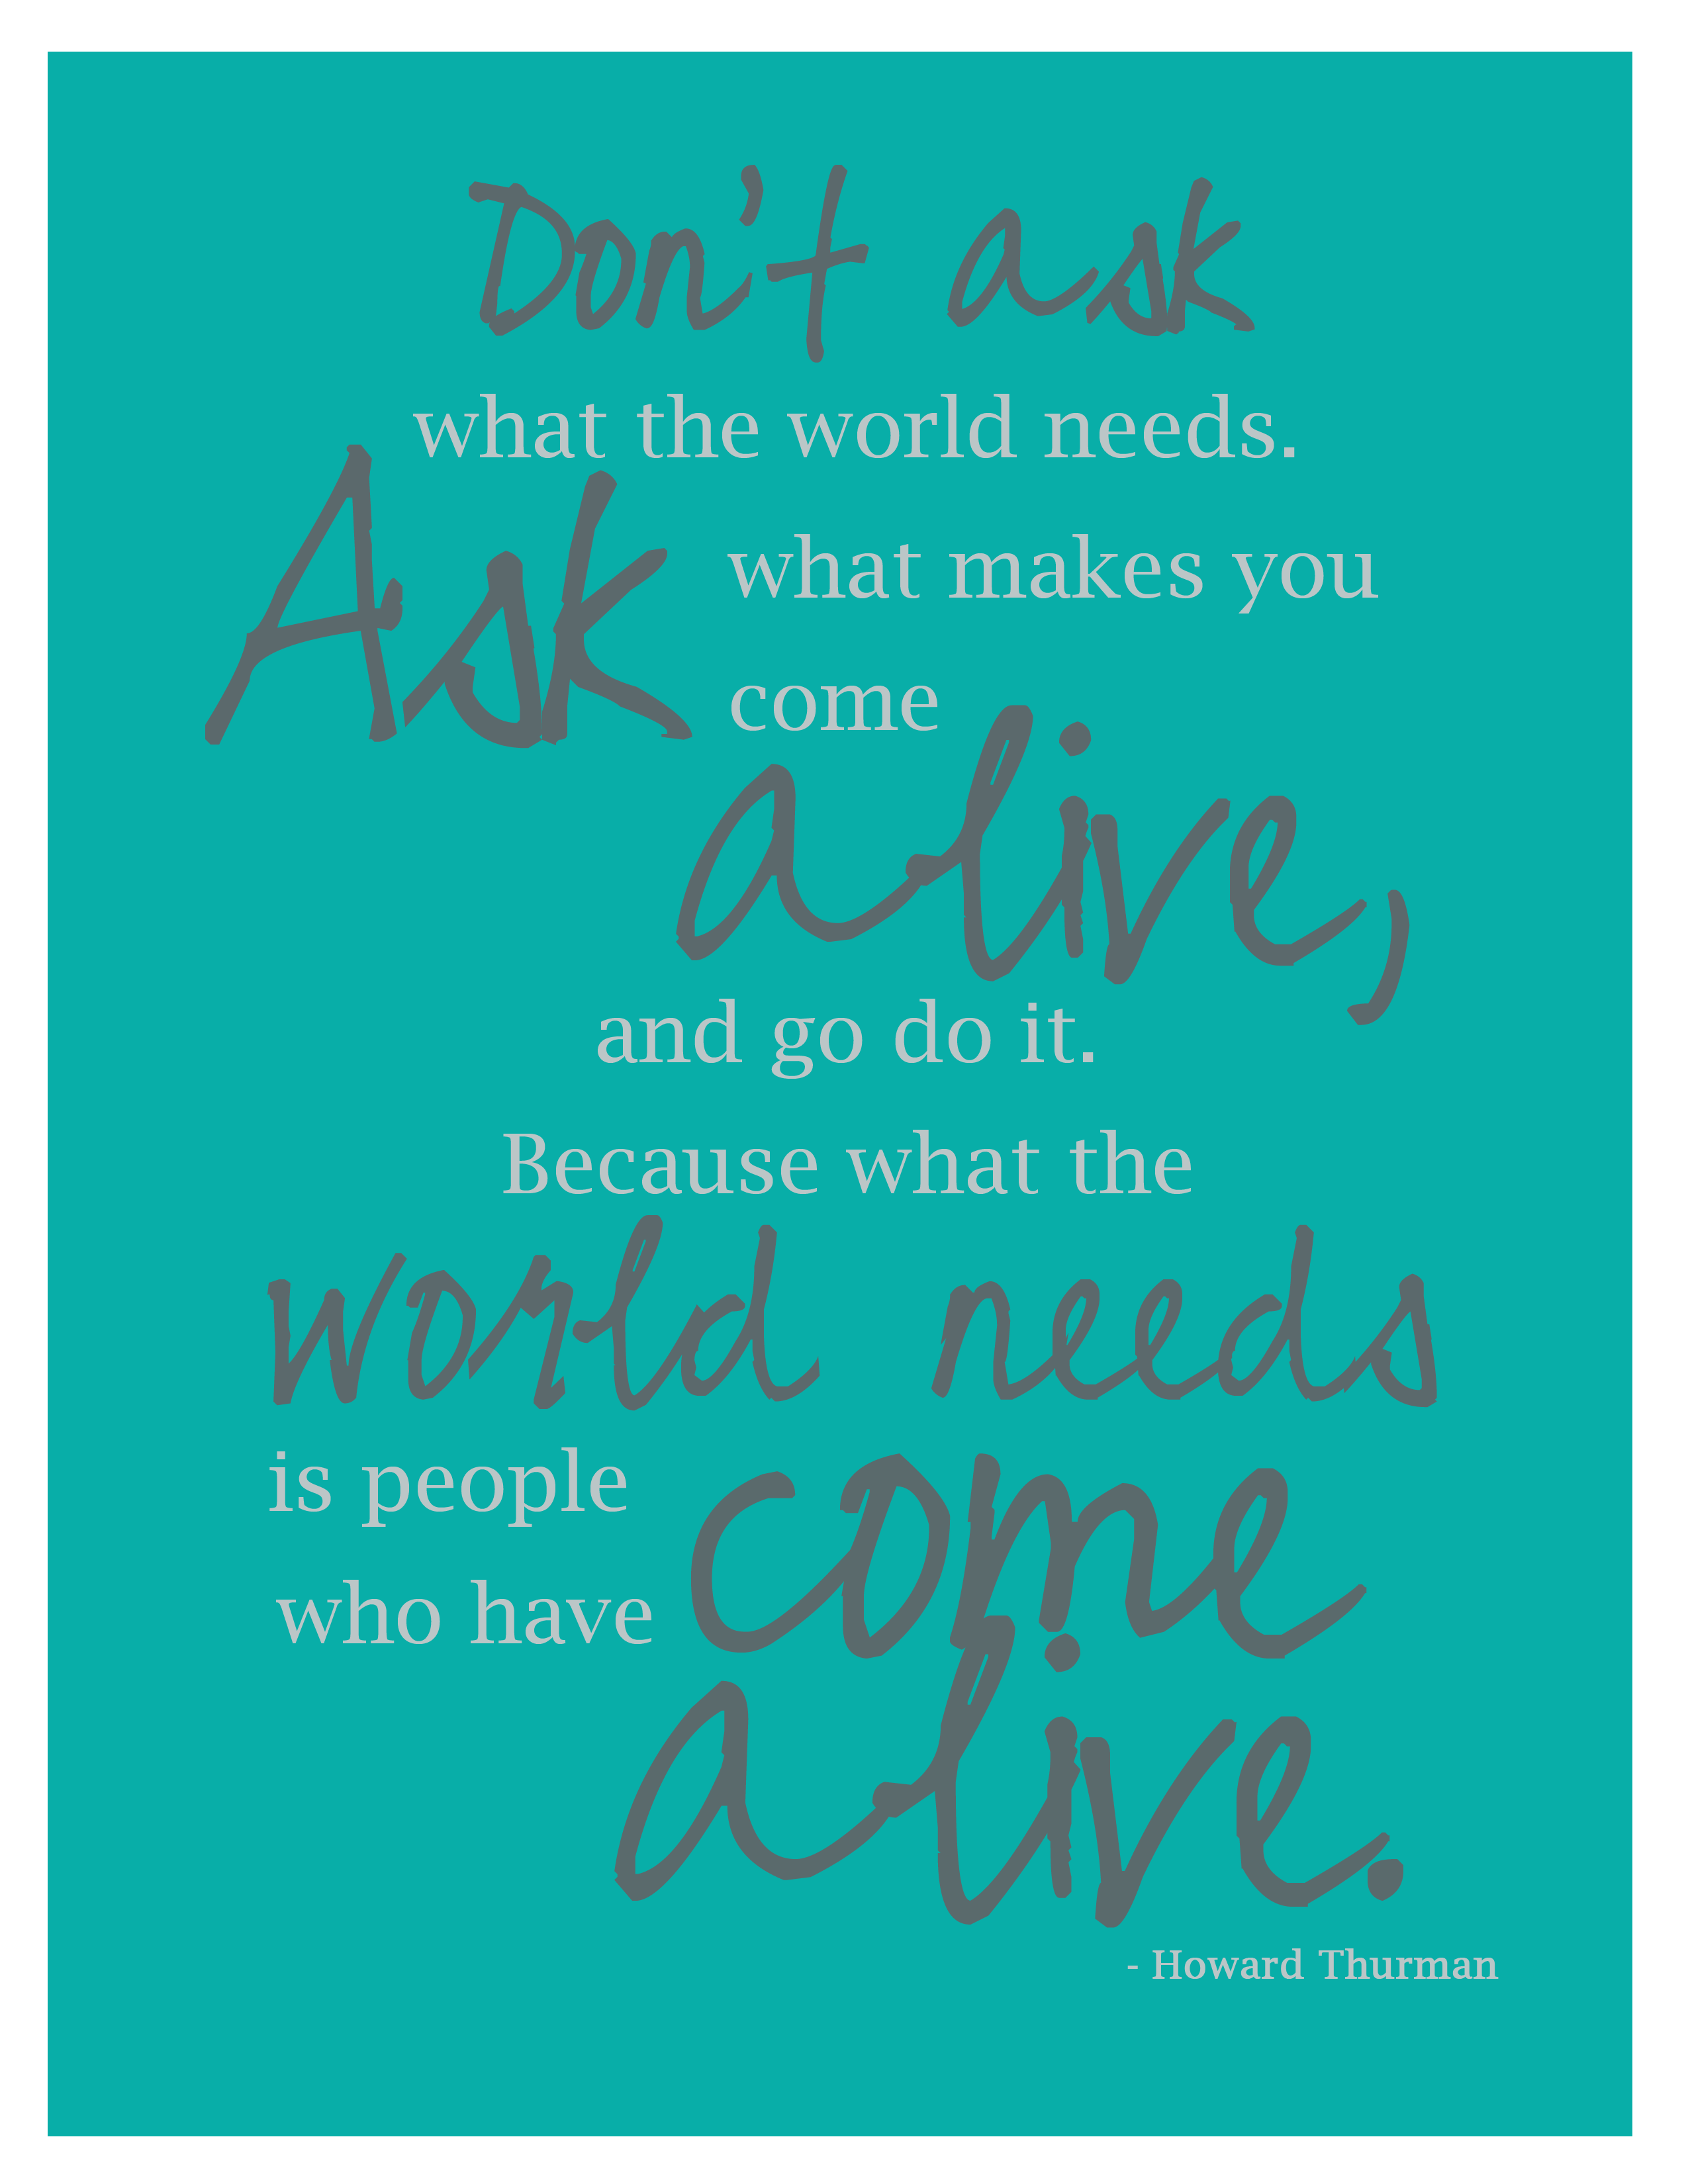 howard thurman quote poster